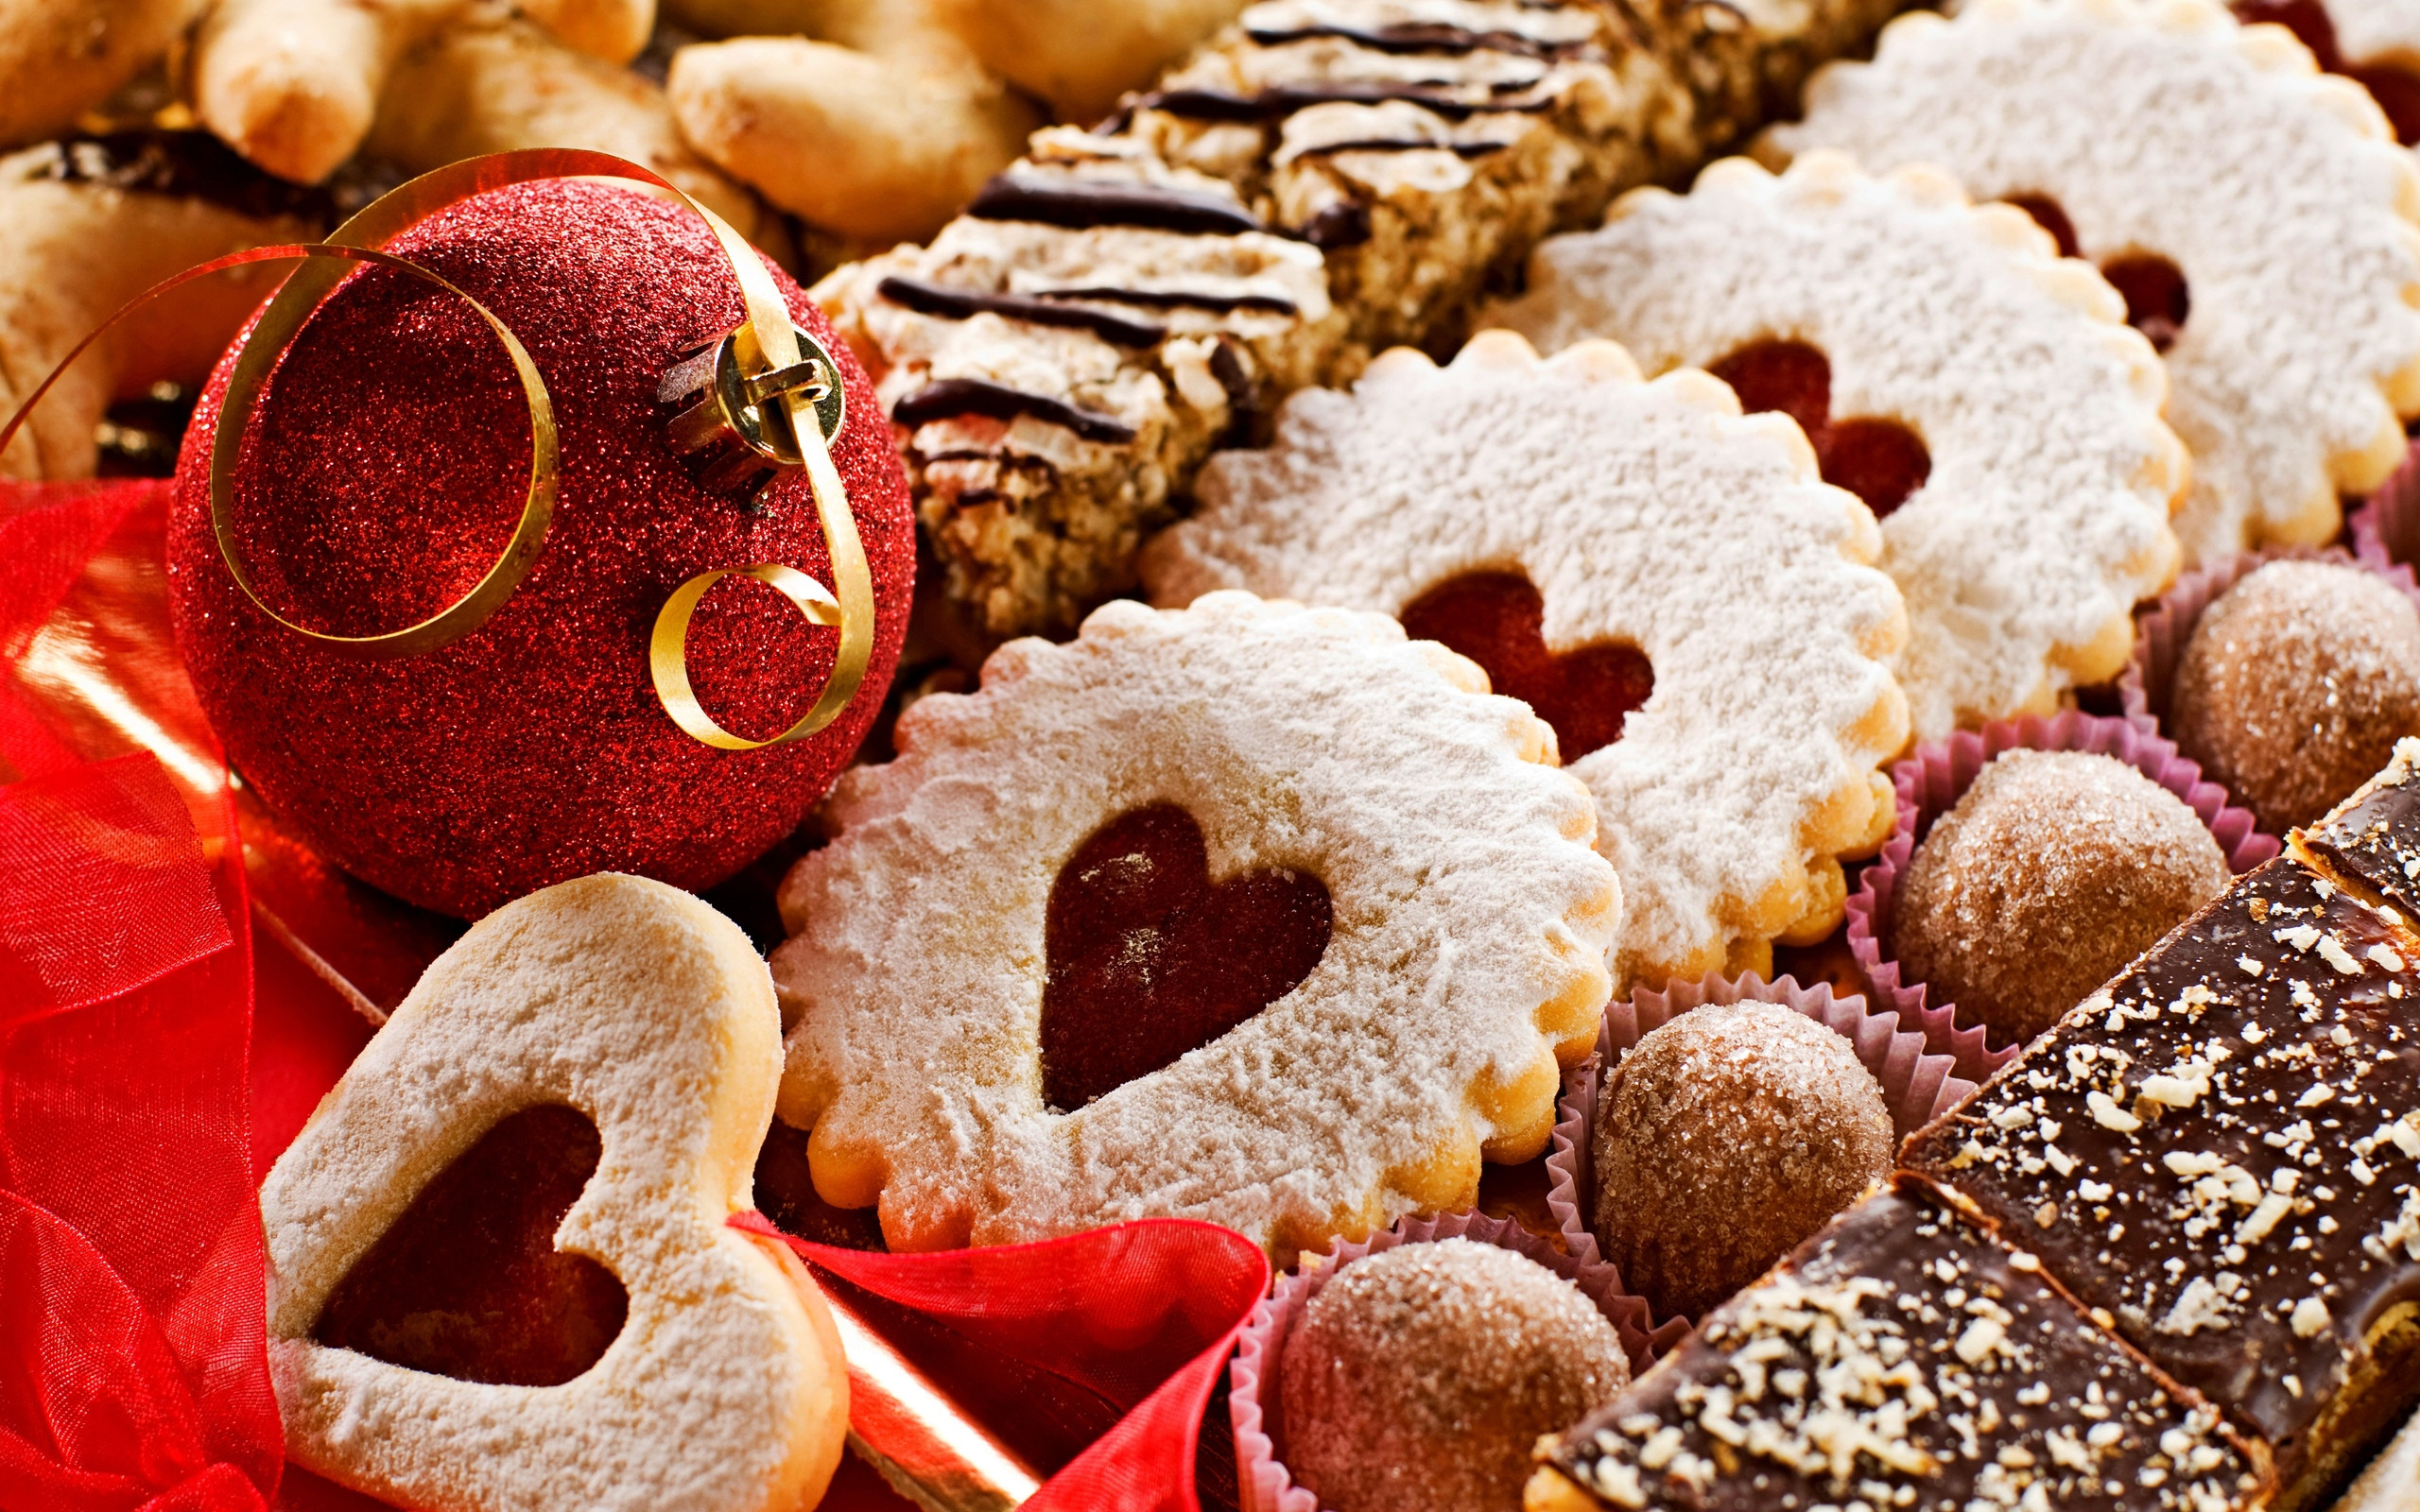 Christmas Cookies And Holiday Hearts  Delicious Christmas Holiday Cookies Hearts Desktop Wallpaper